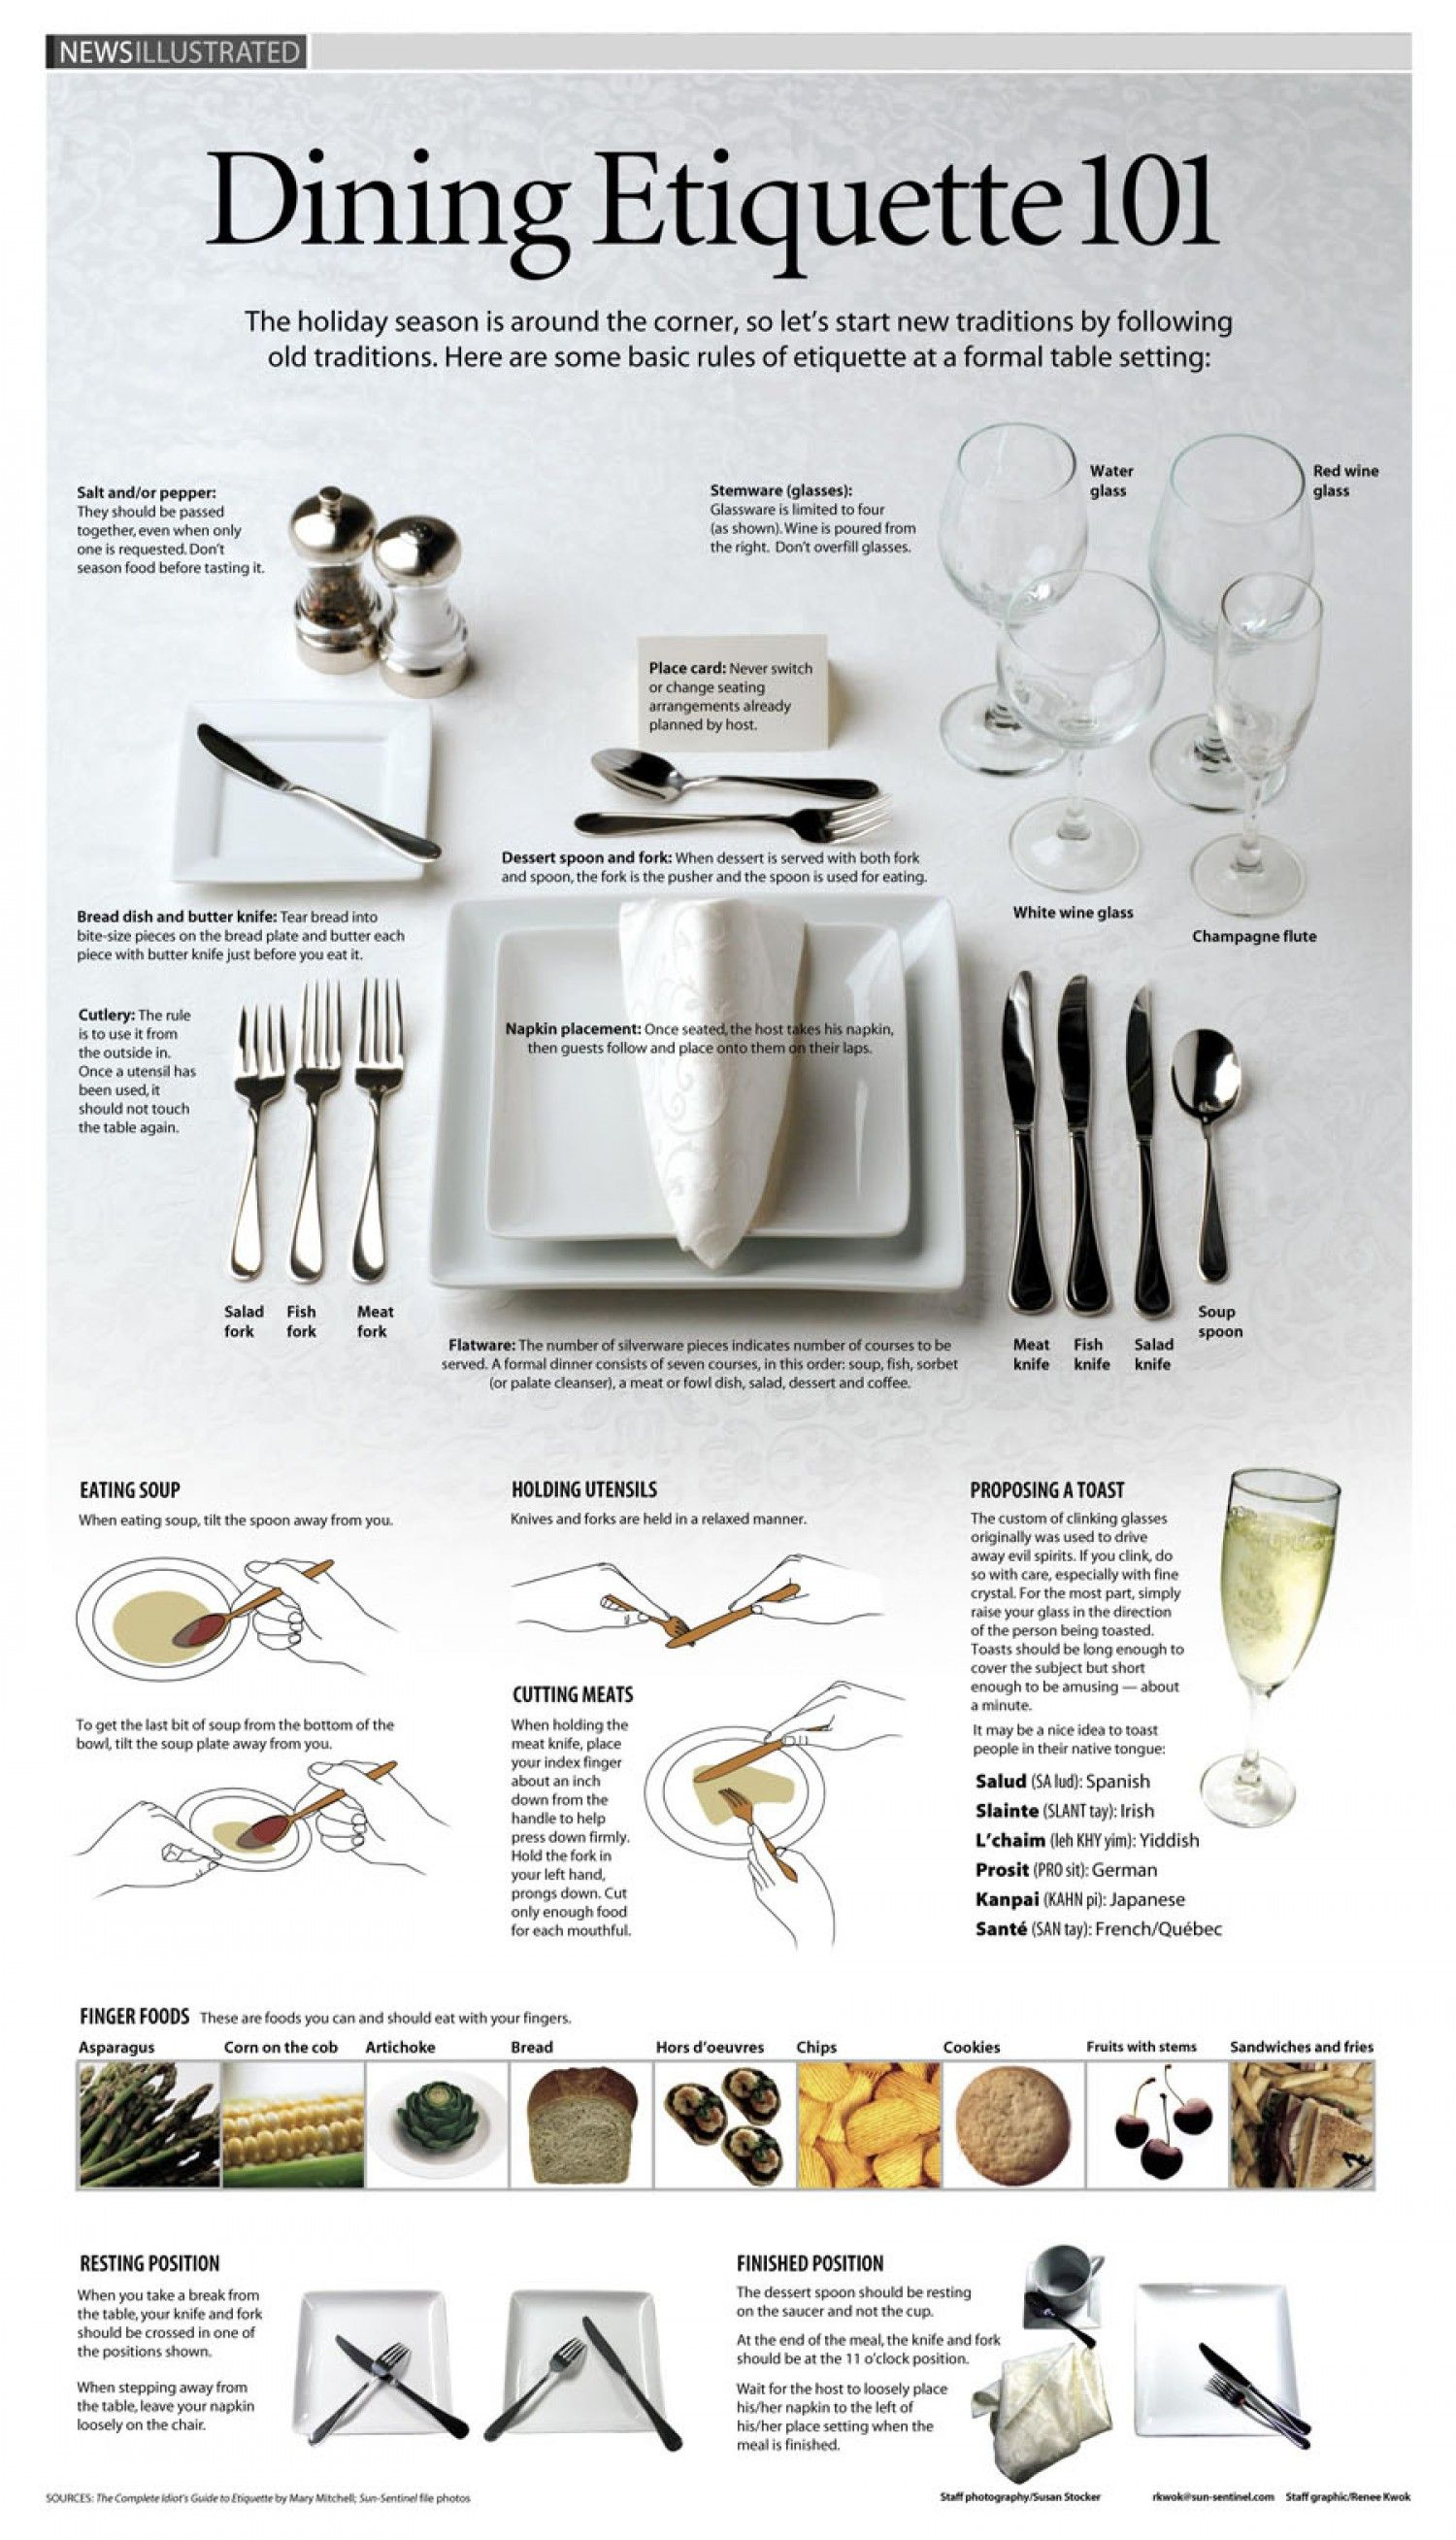 Dining Etiquette Mise En Place Of The Room